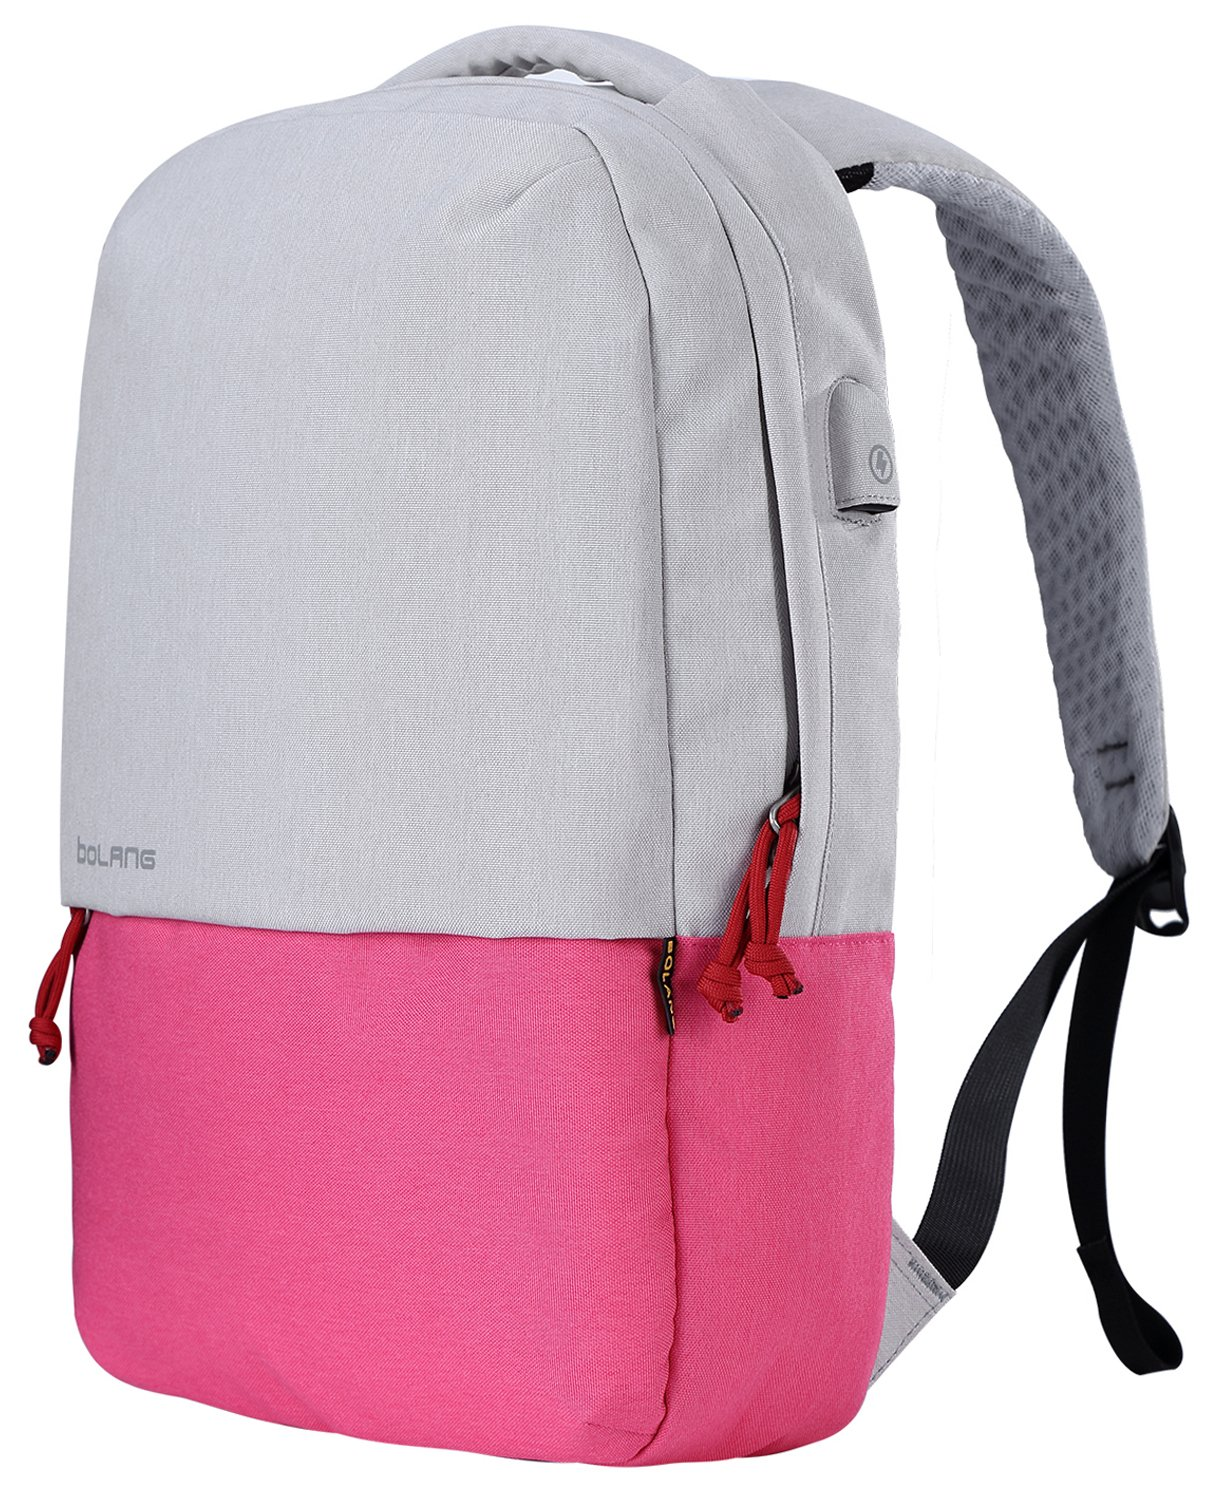 BOLANG Water Resistant Laptop Backpack with USB Charging Port School Bookbags Casual Daypack (White/Pink)